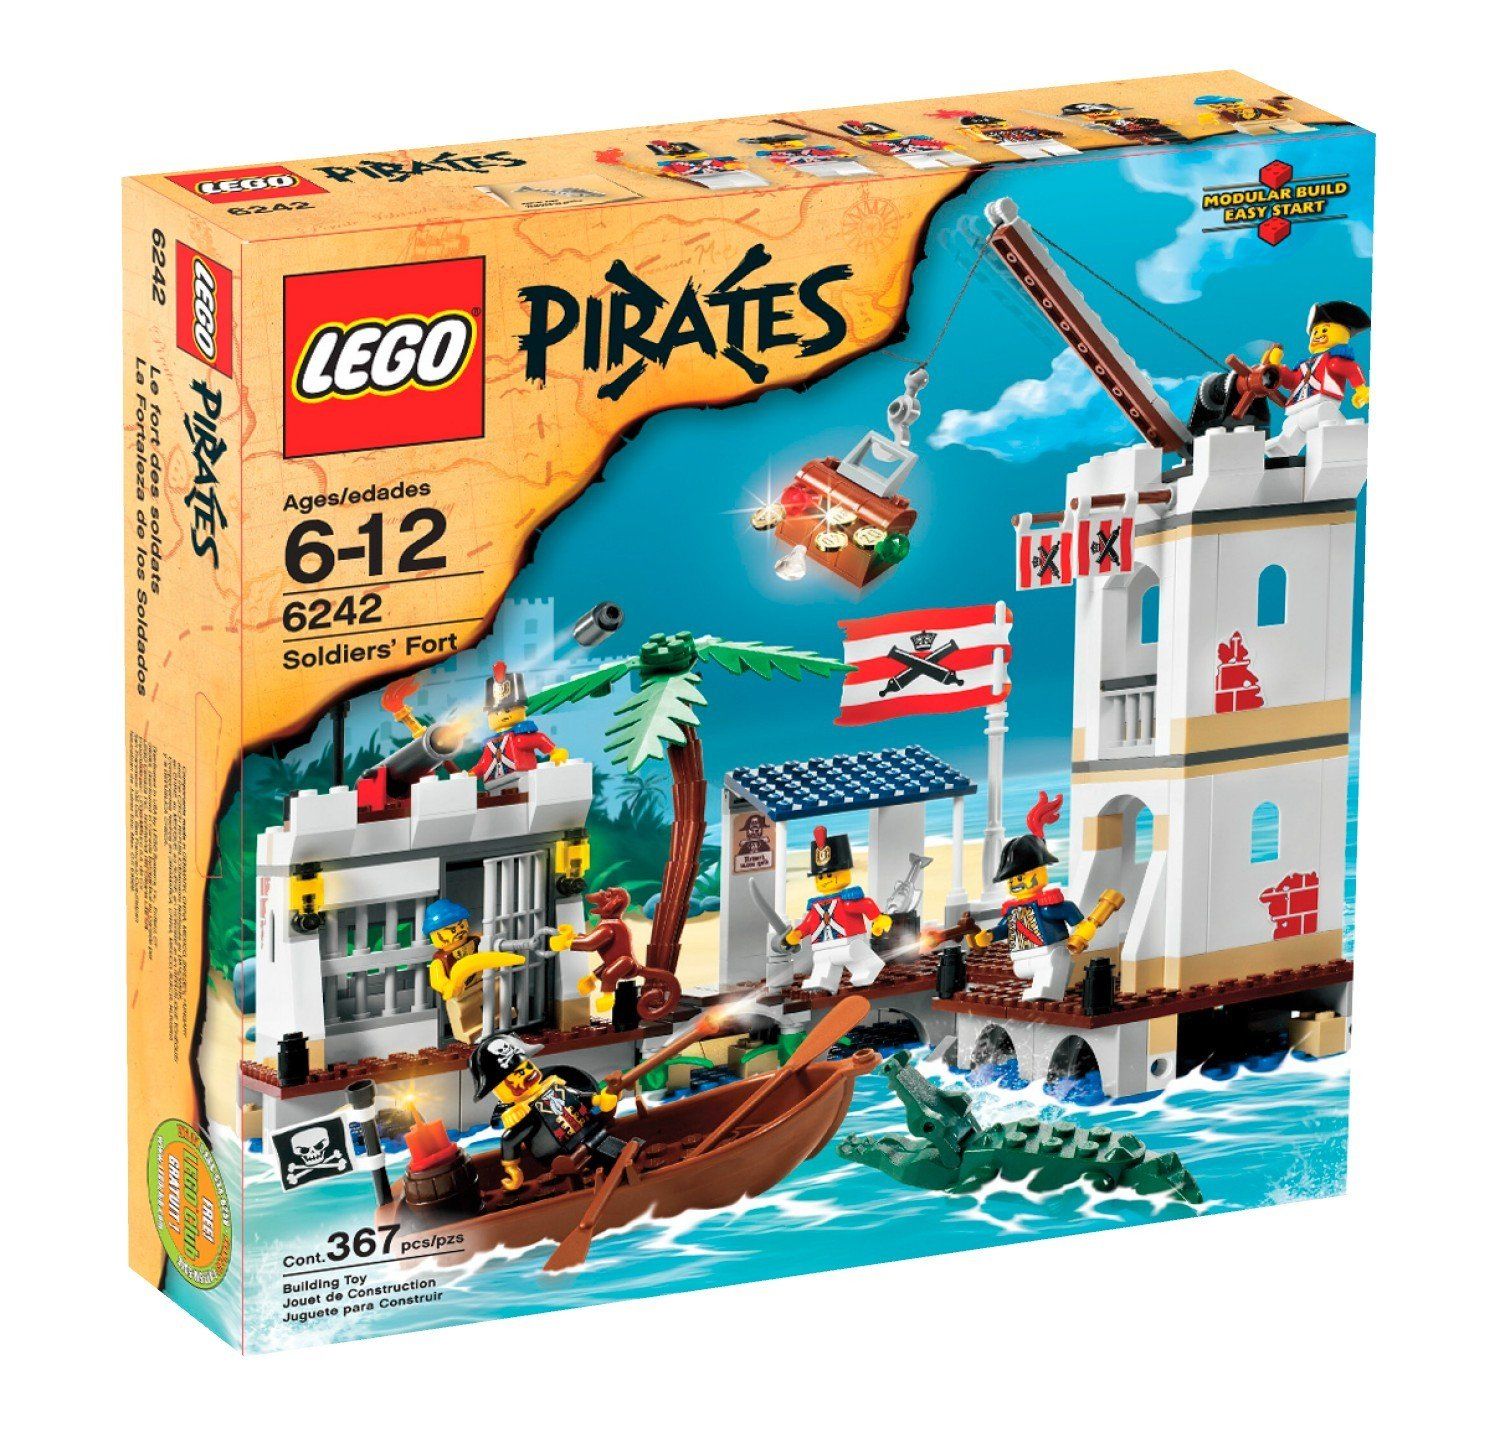 amazoncom lego pirates soldiers fort 6242 toys games - Lego Pirate